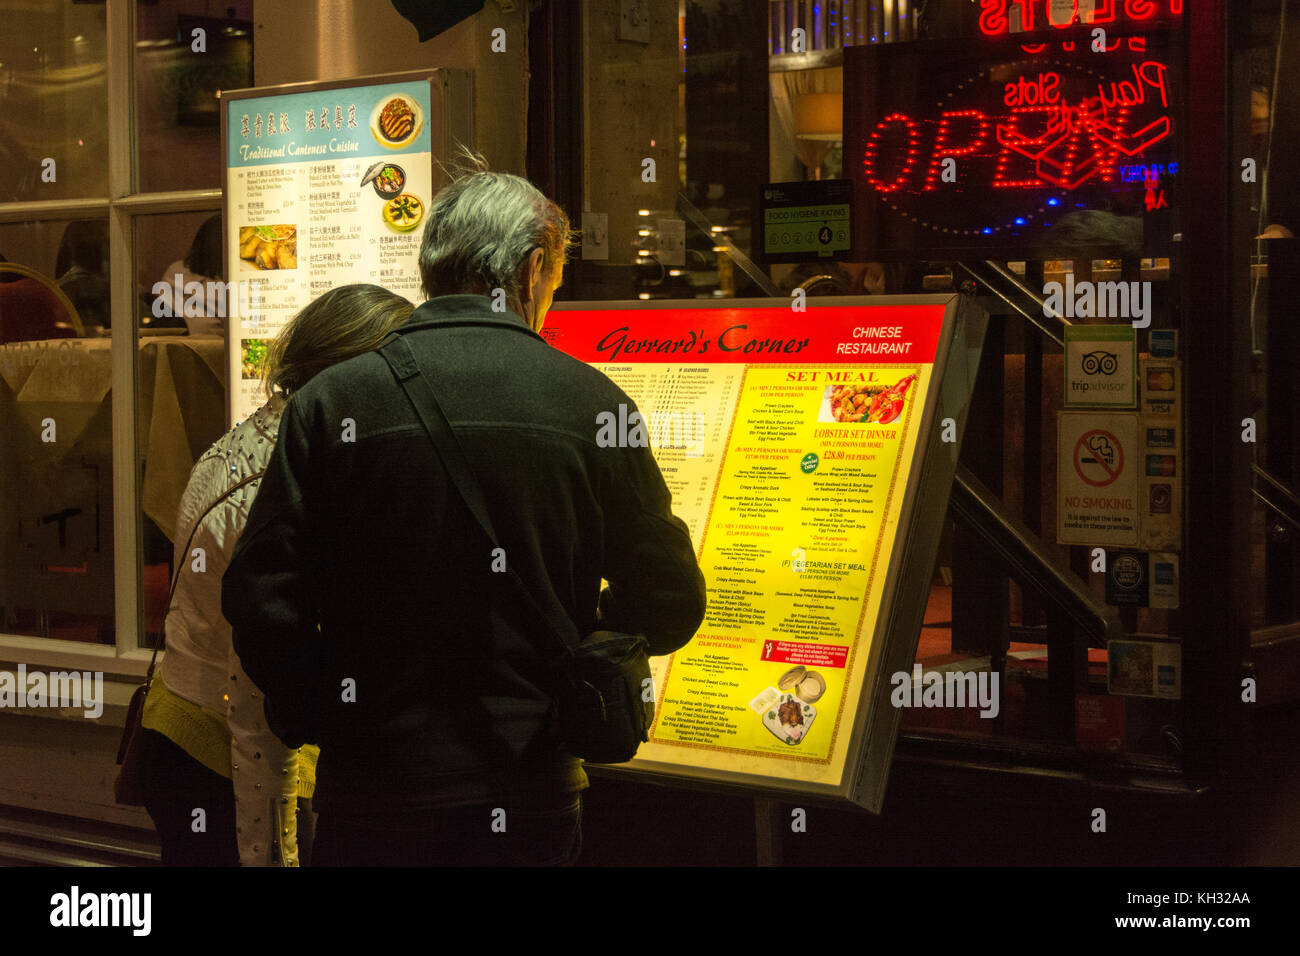 Deciding what to eat from a menu outside a restaurant in China Town, London, England, UK. - Stock Image